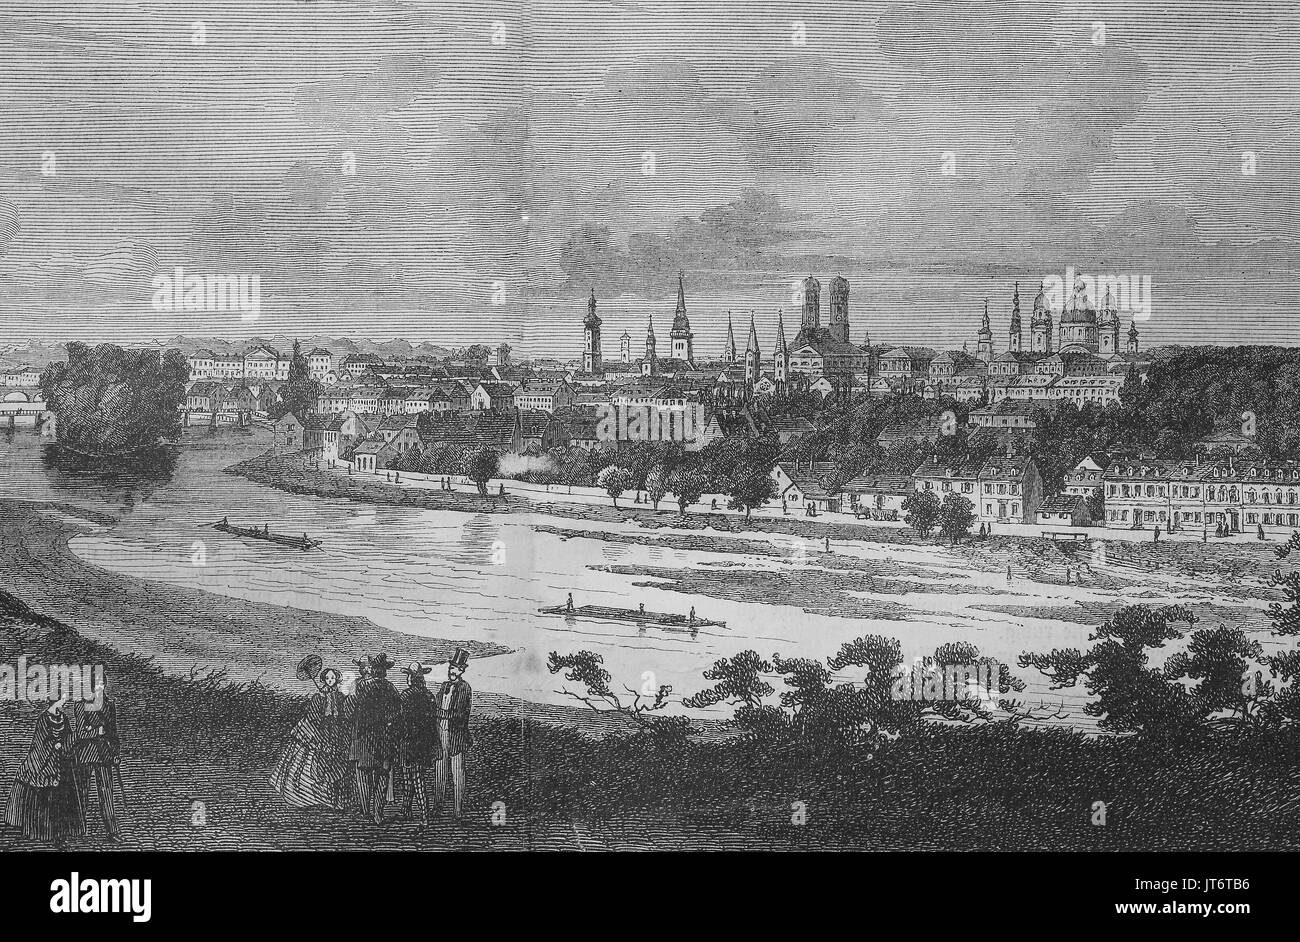 panorama view of Munich, Bavaria, Germany, Digital improved reproduction of an image published between 1880 - 1885 Stock Photo